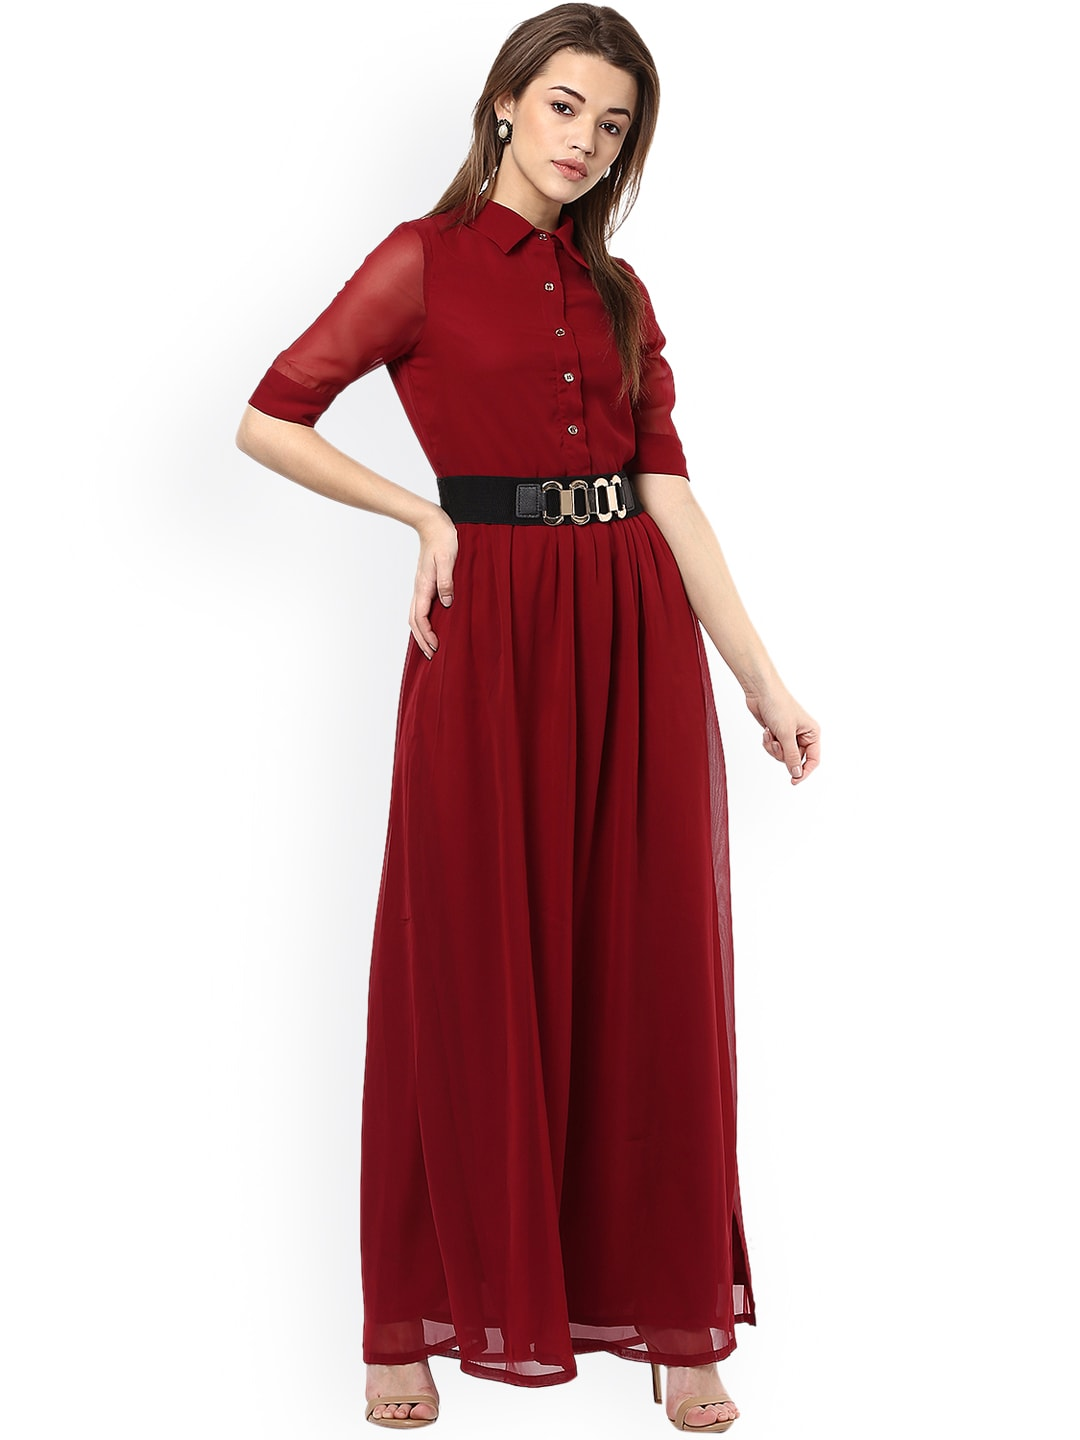 Women Party Dresses - Buy Women Party Dresses online in India